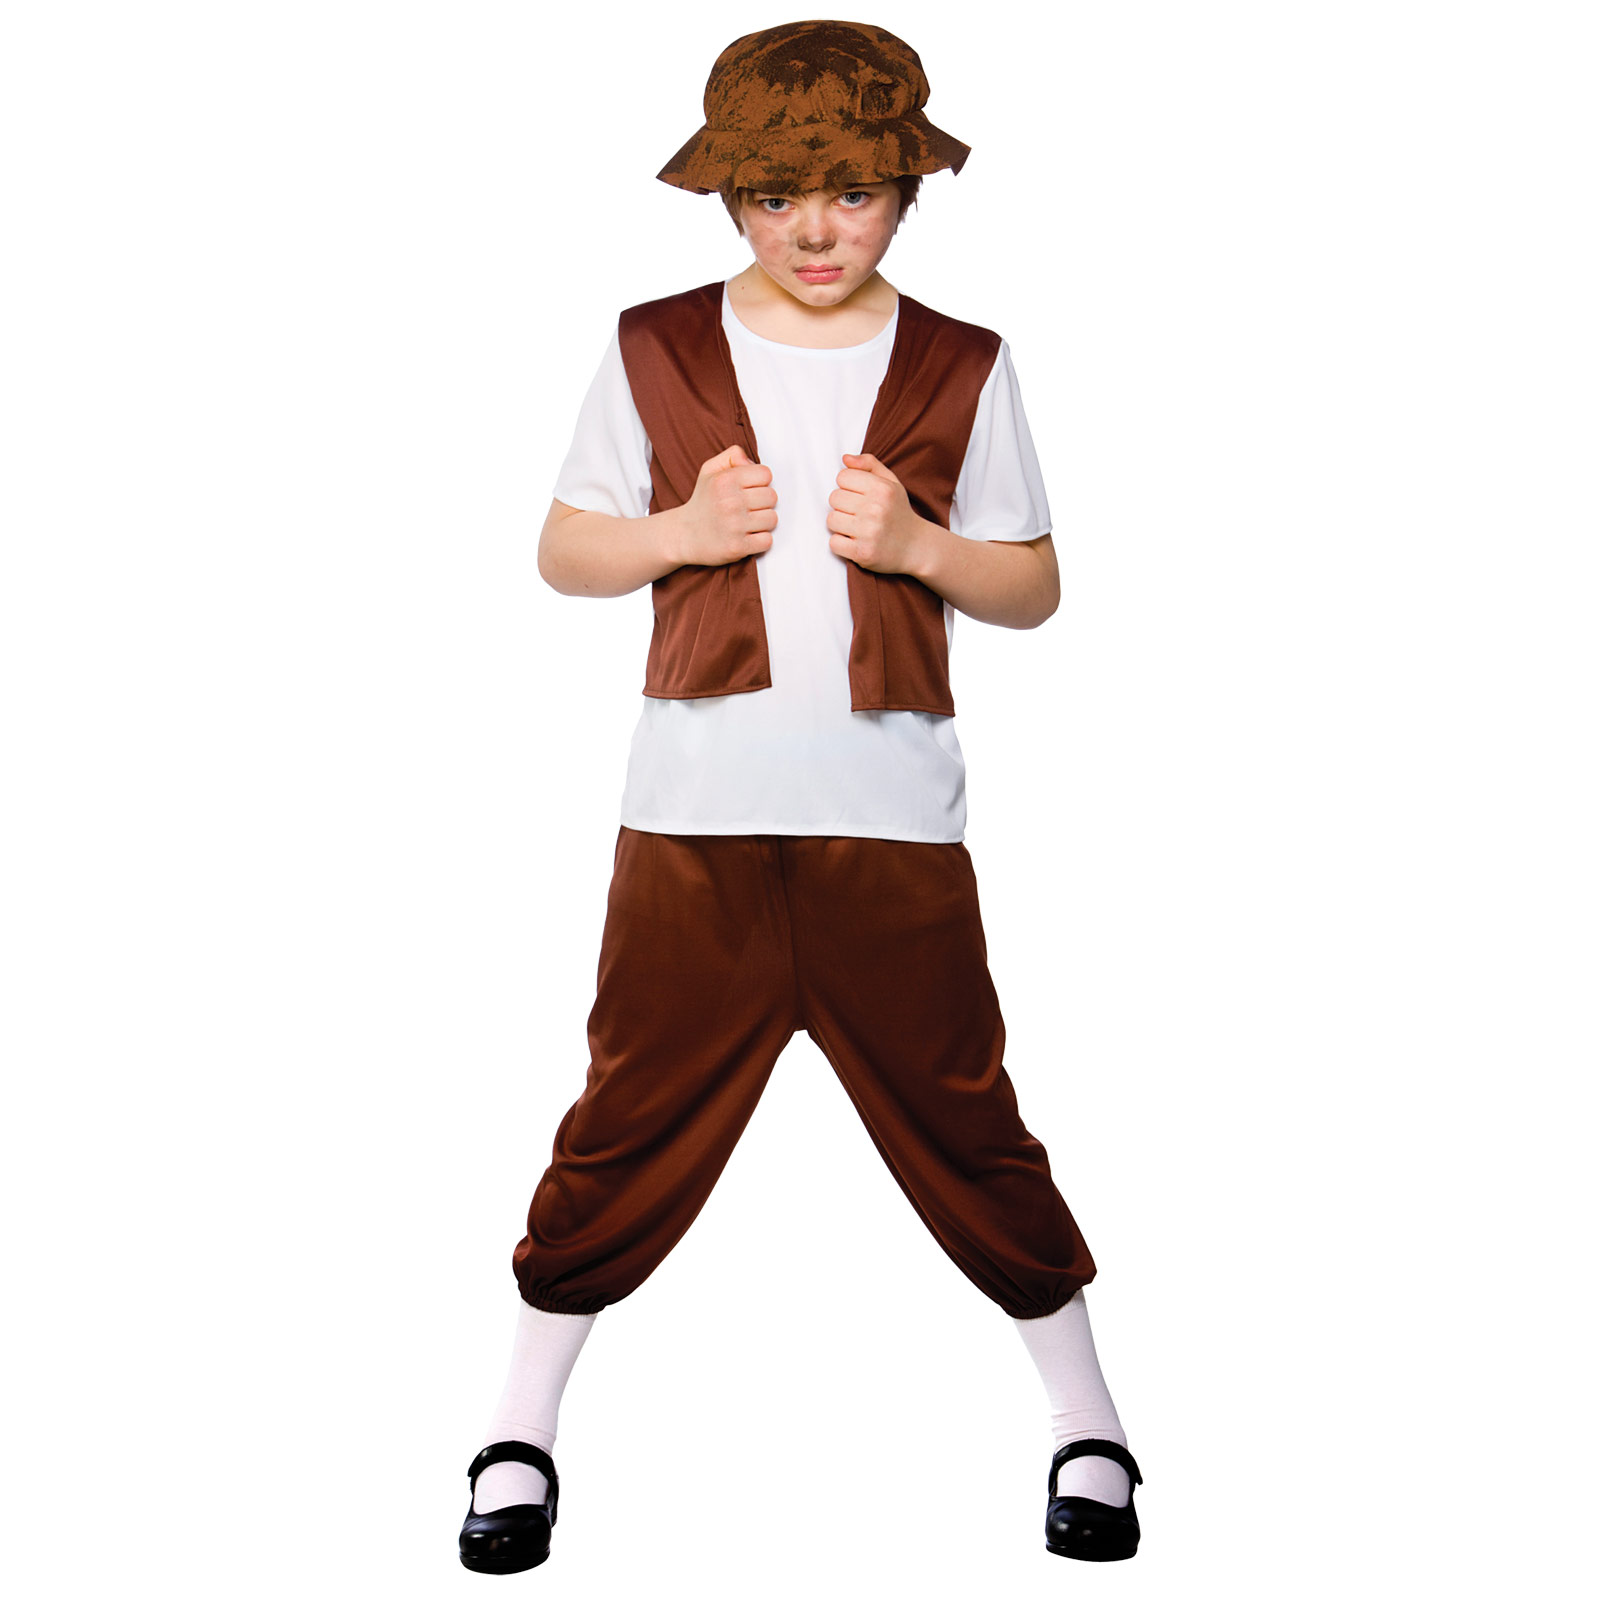 Boys-Tudor-Boy-Costume-Poor-Street-Child-Play-Party-Halloween-Fancy-Dress-Up-New